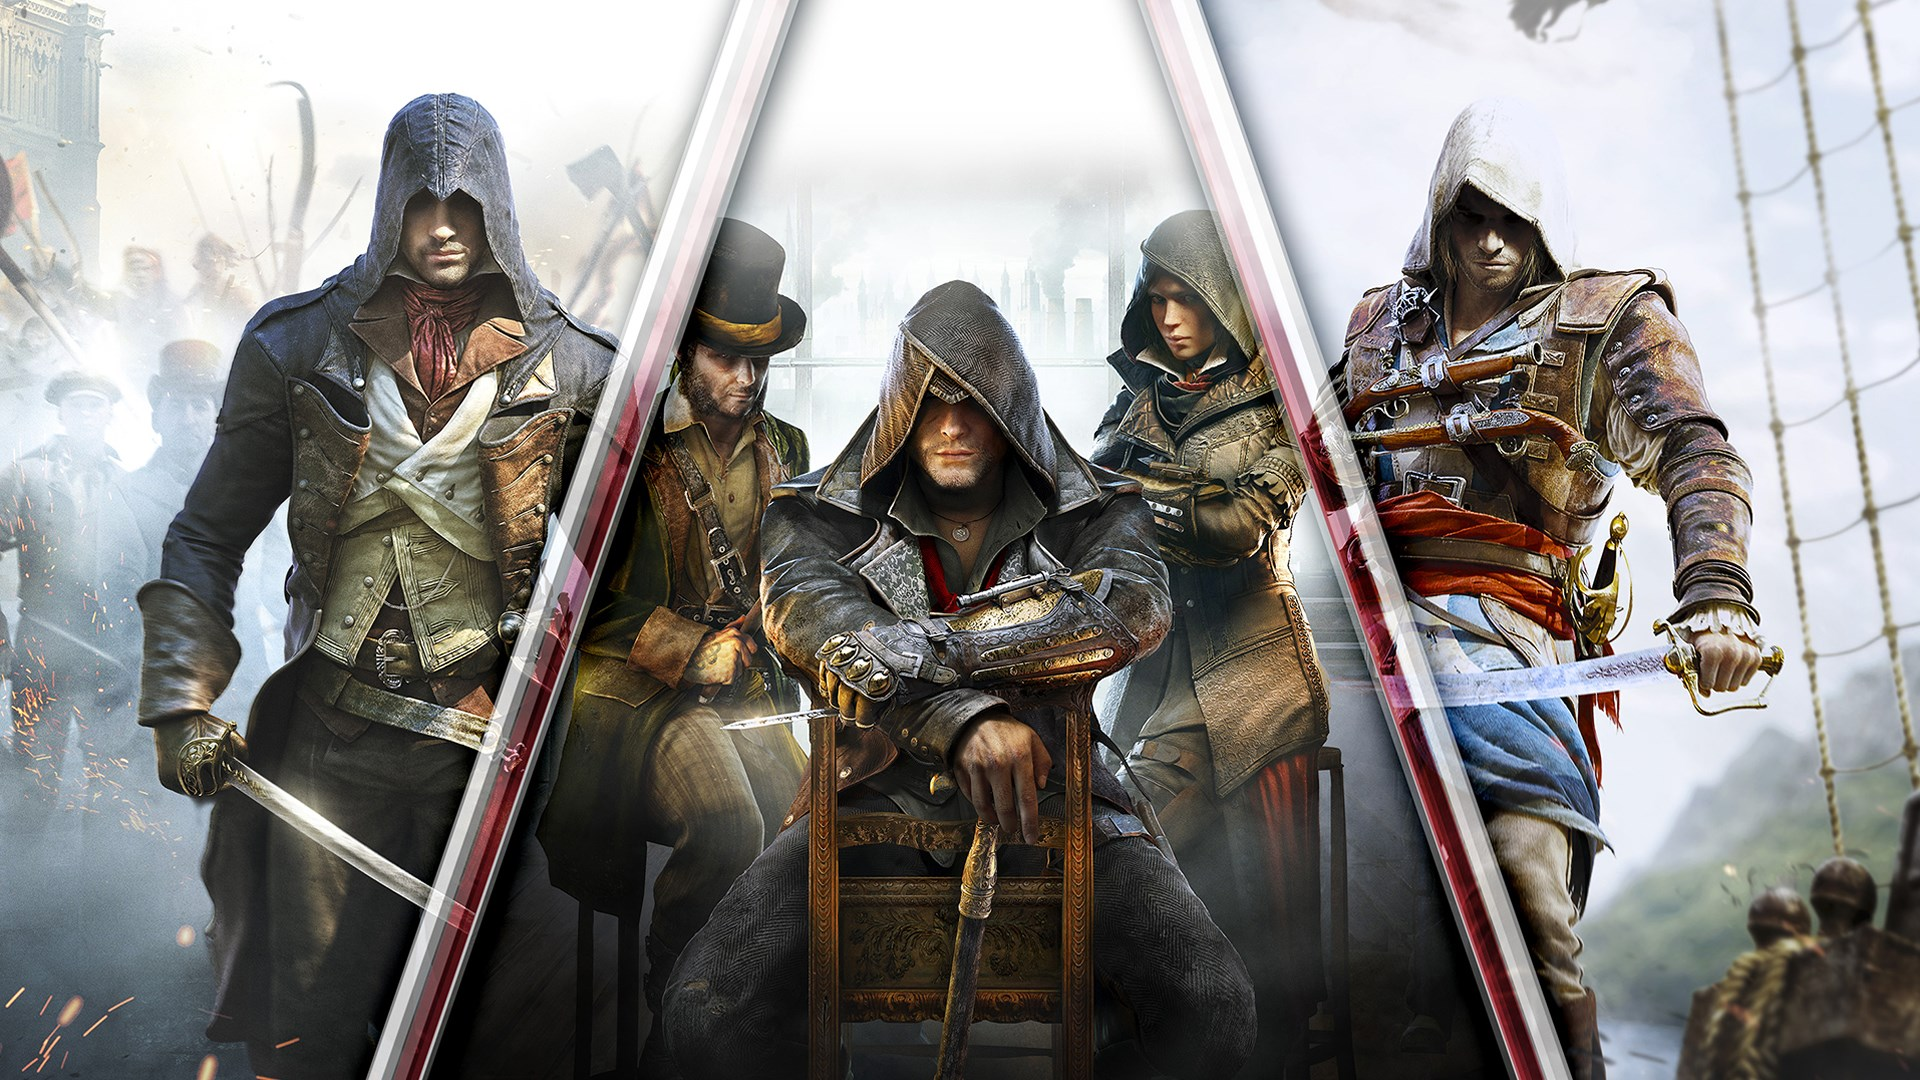 Comprar Pack triplo Assassin's Creed: Black Flag, Unity, Syndicate -  Microsoft Store pt-BR